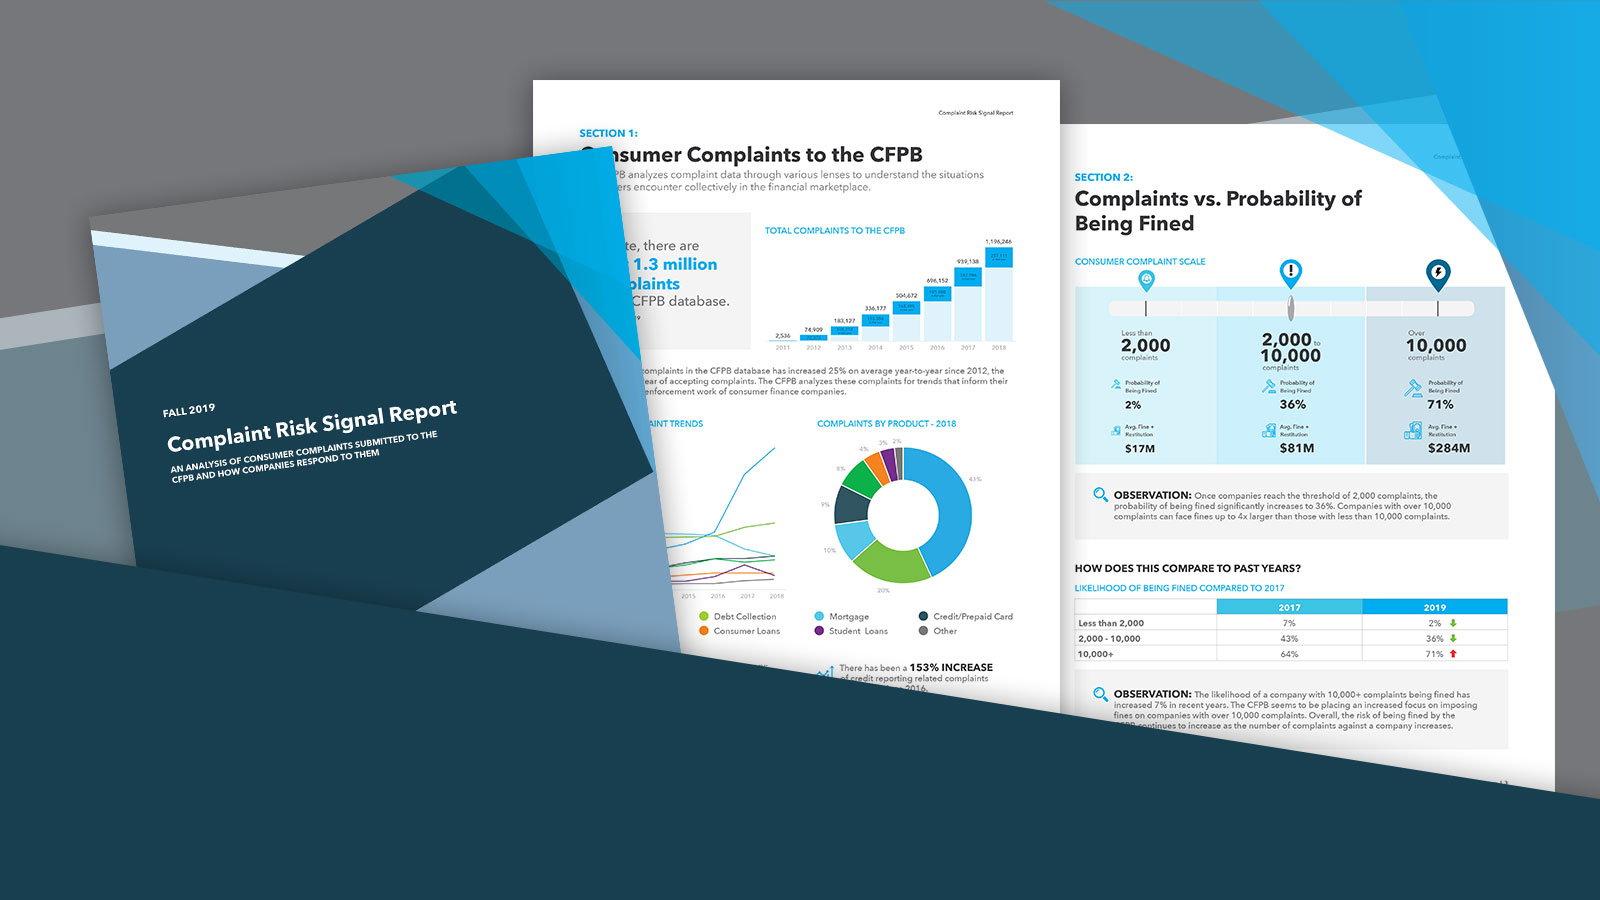 What You Need to Know About Consumer Complaint Trends from the CFPB's Database